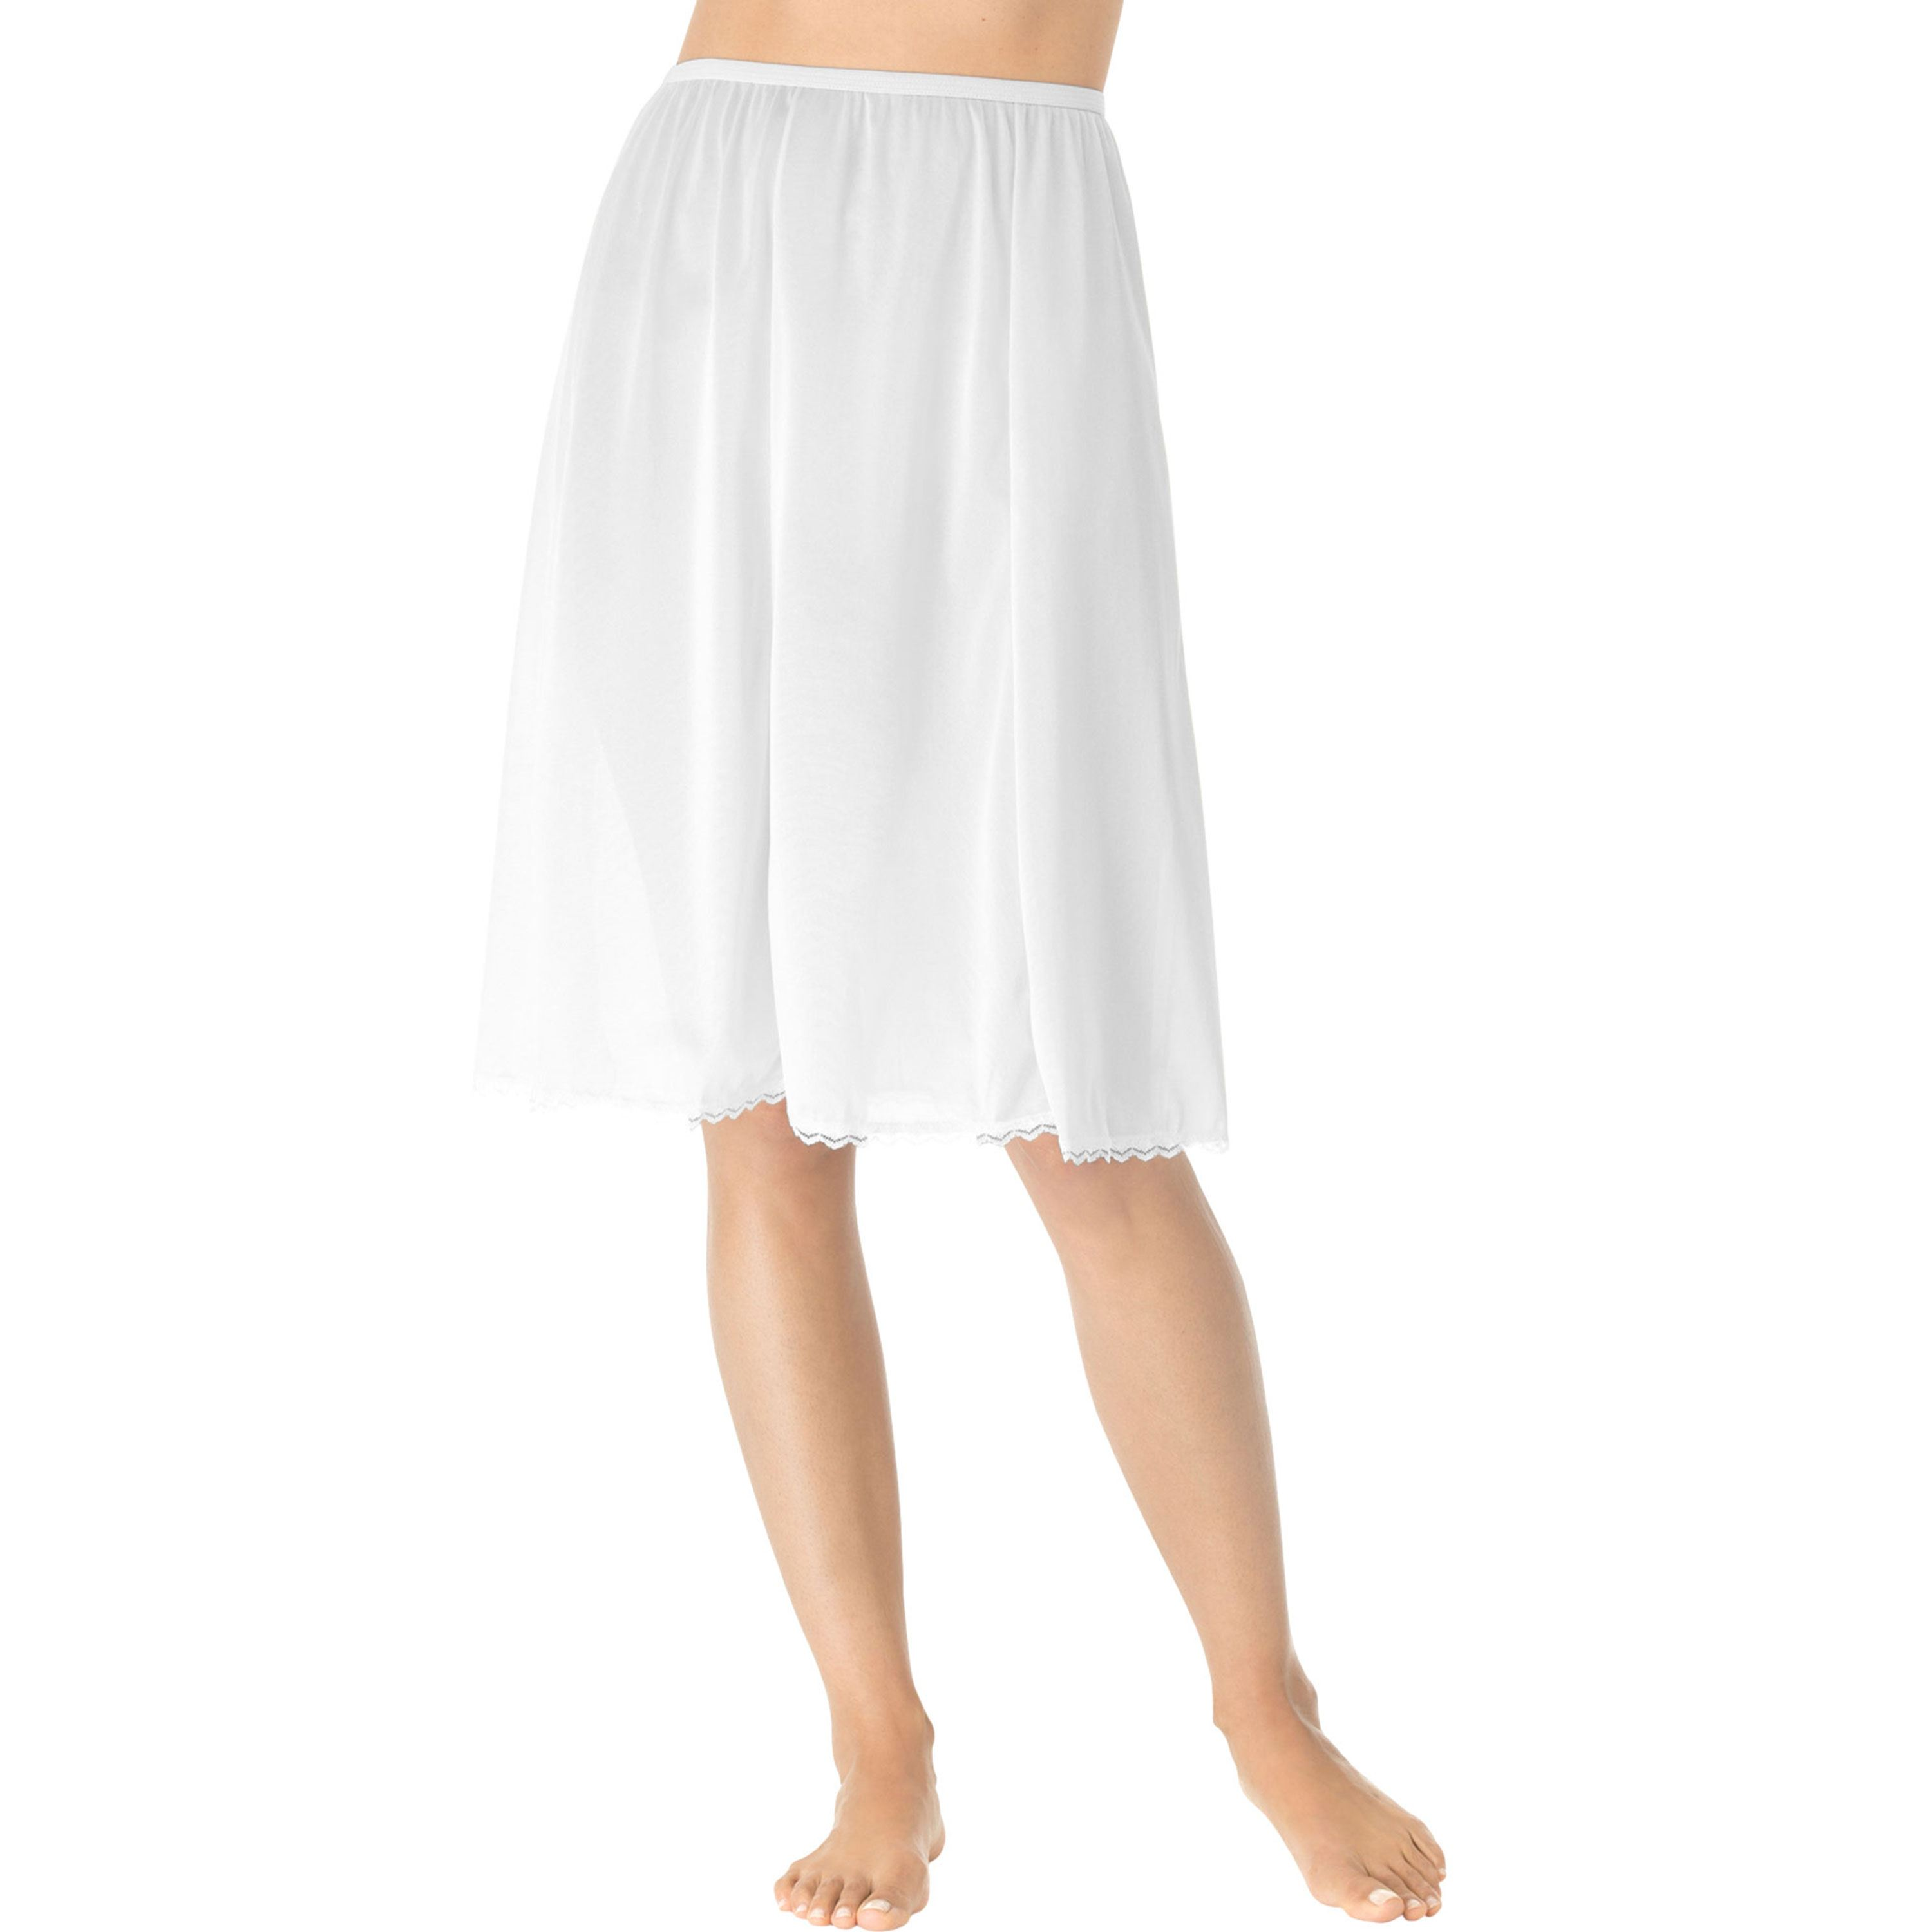 Comfort Choice Plus Size 6-panel Half Slip